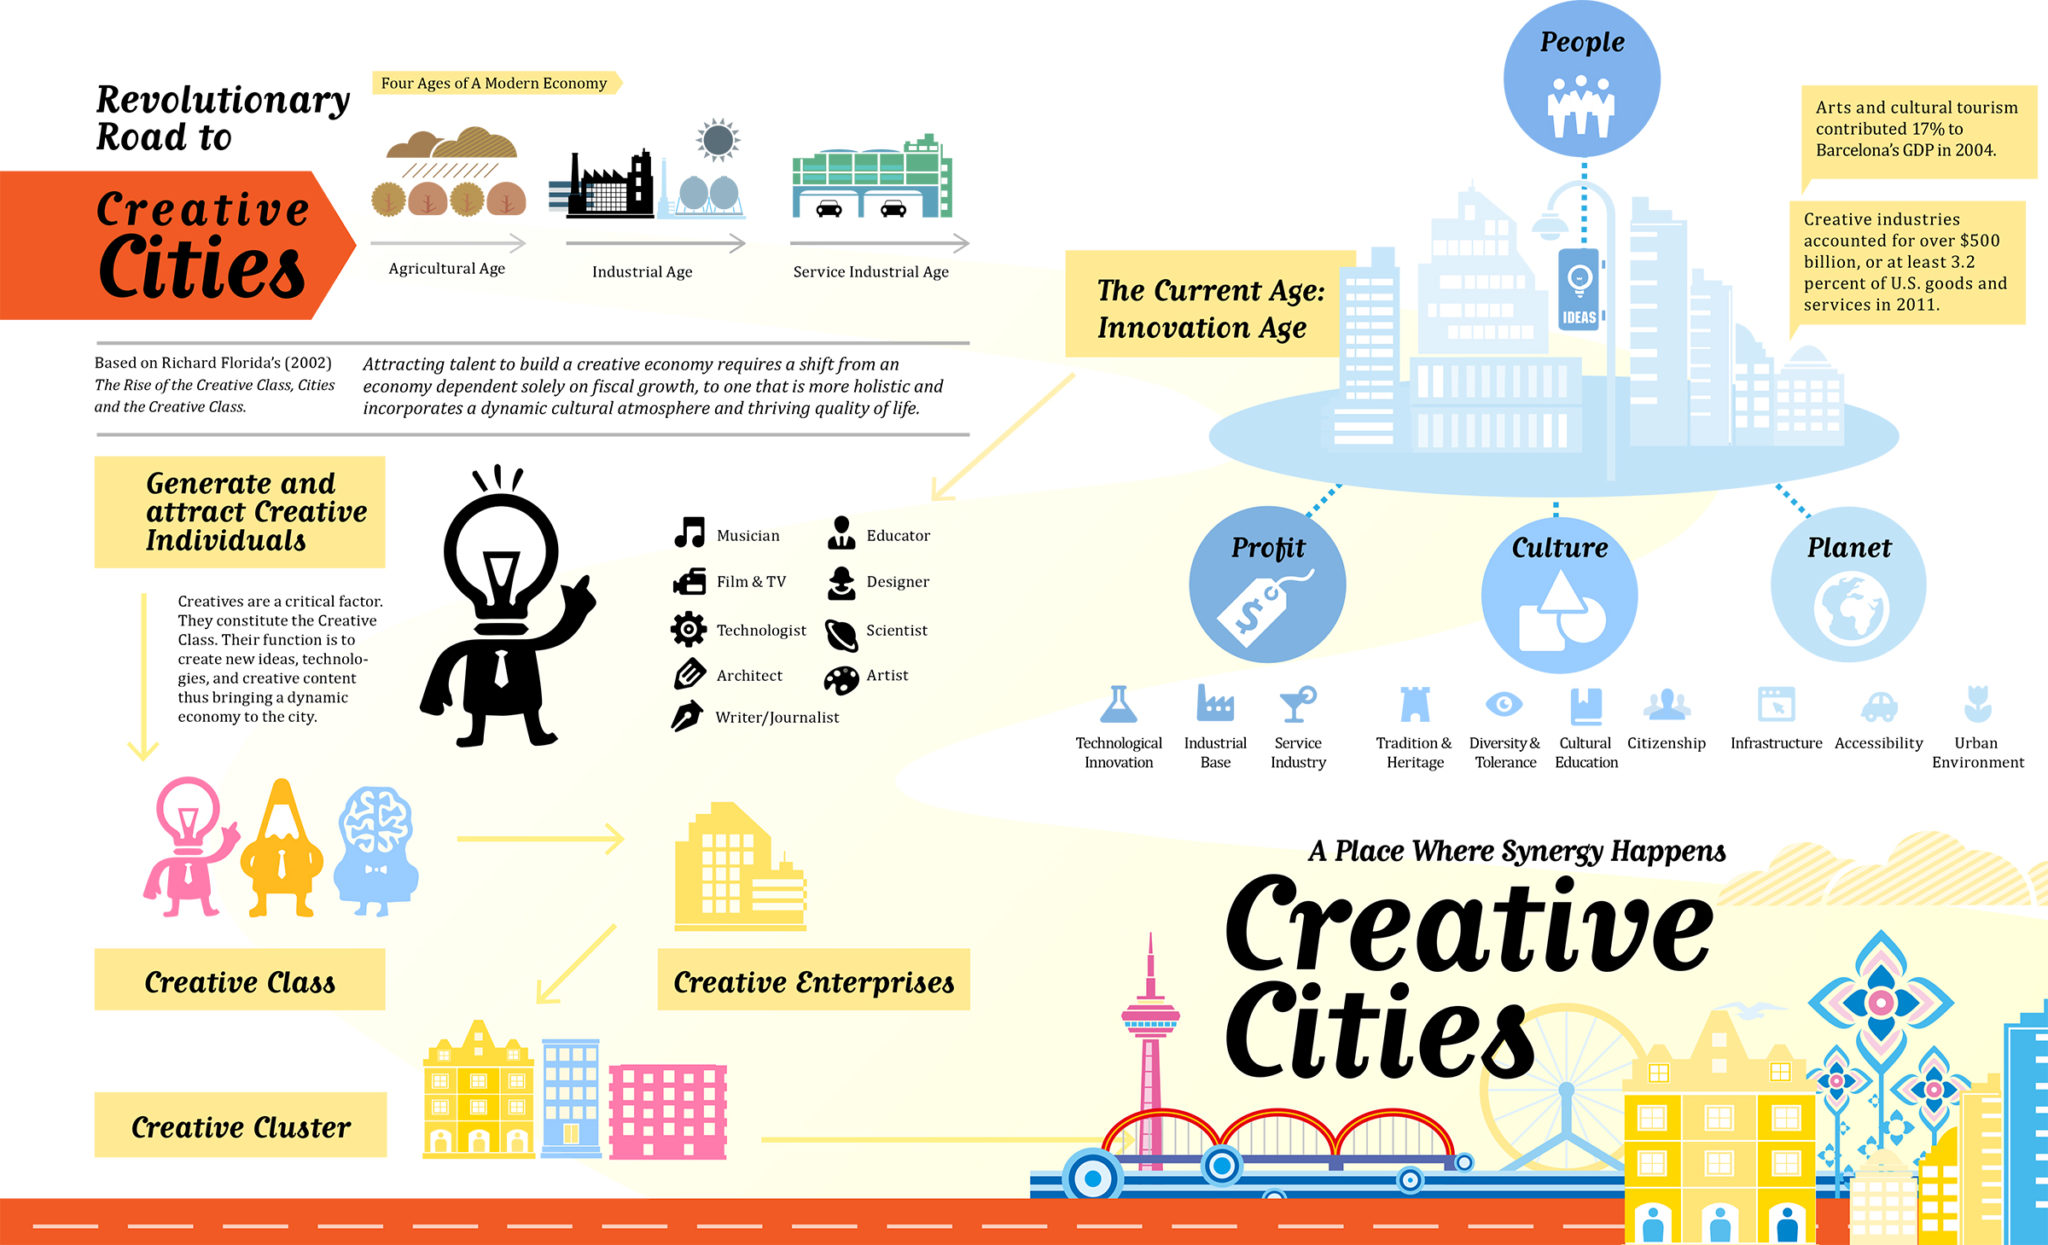 creative city_updated 30.08.14